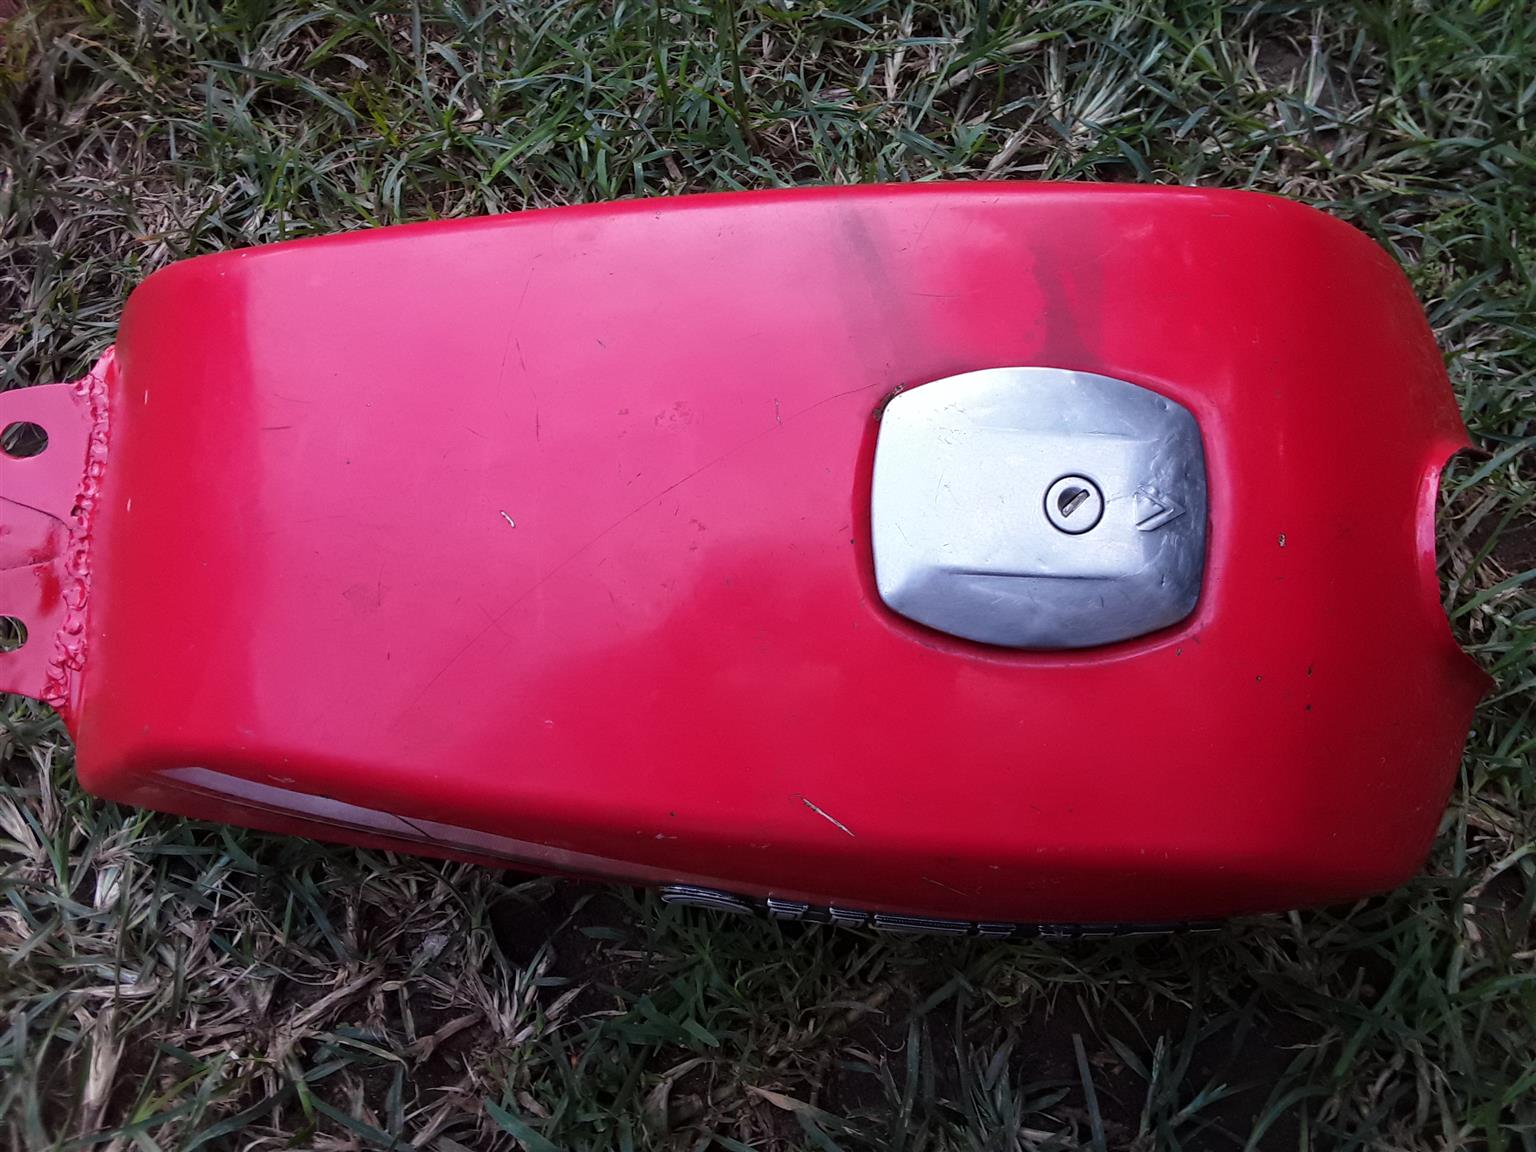 Petrol Tank for Suzuki Motor Bike. As good as new. With the fuel tap and filter. And the Fuel Cap.